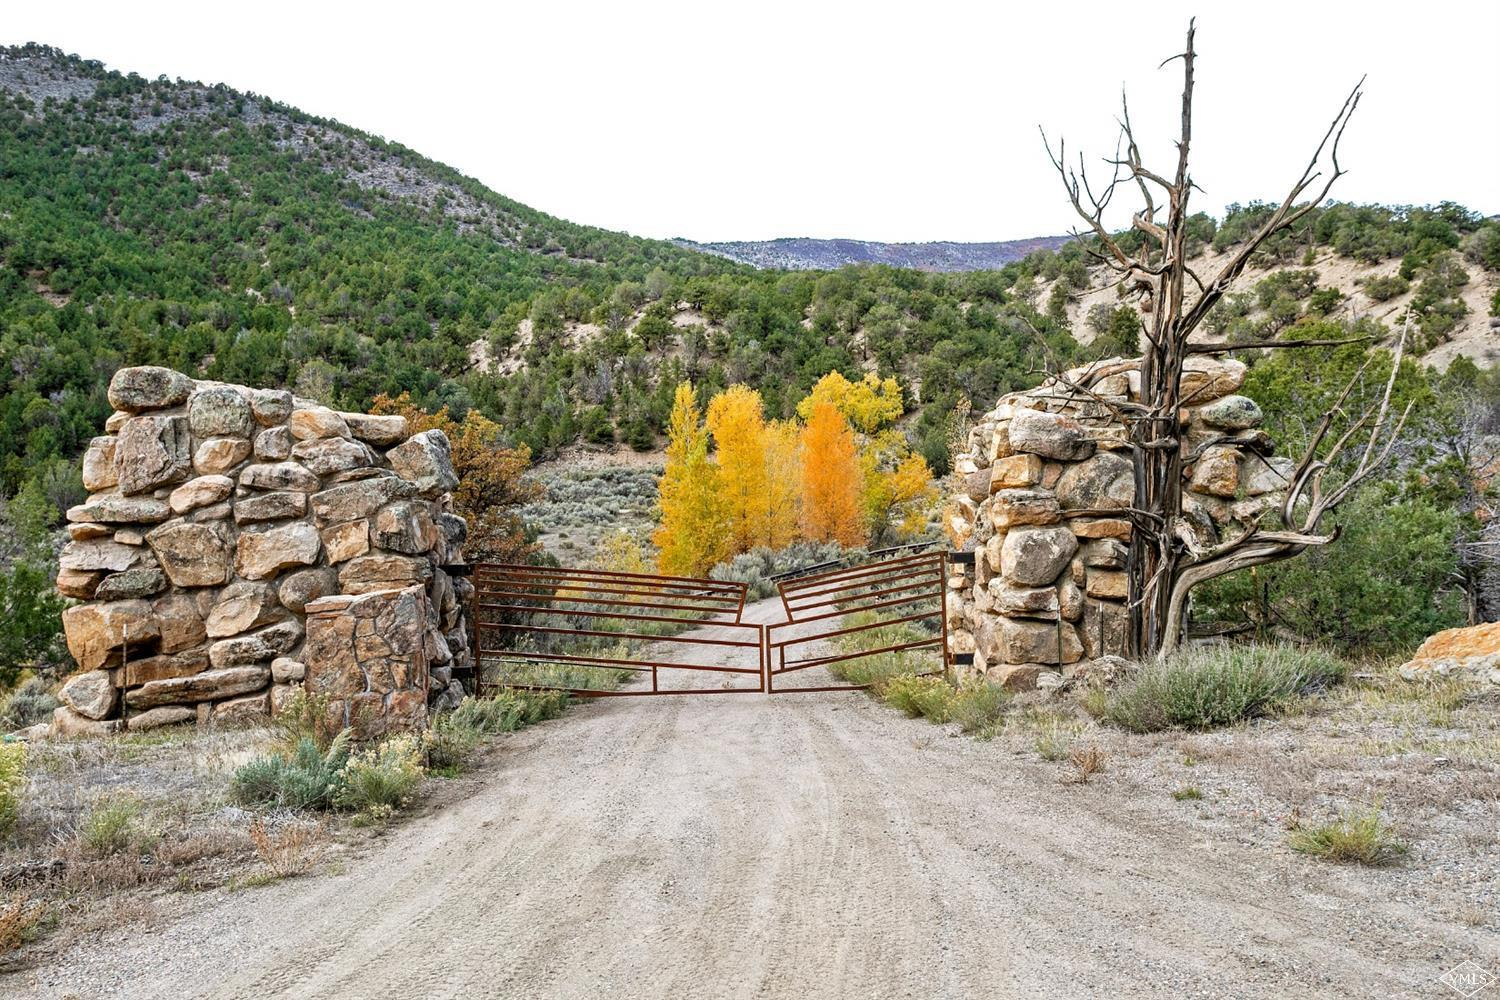 2742 Sweetwater Road, 3, Gypsum, CO 81637 Property Photo - Gypsum, CO real estate listing